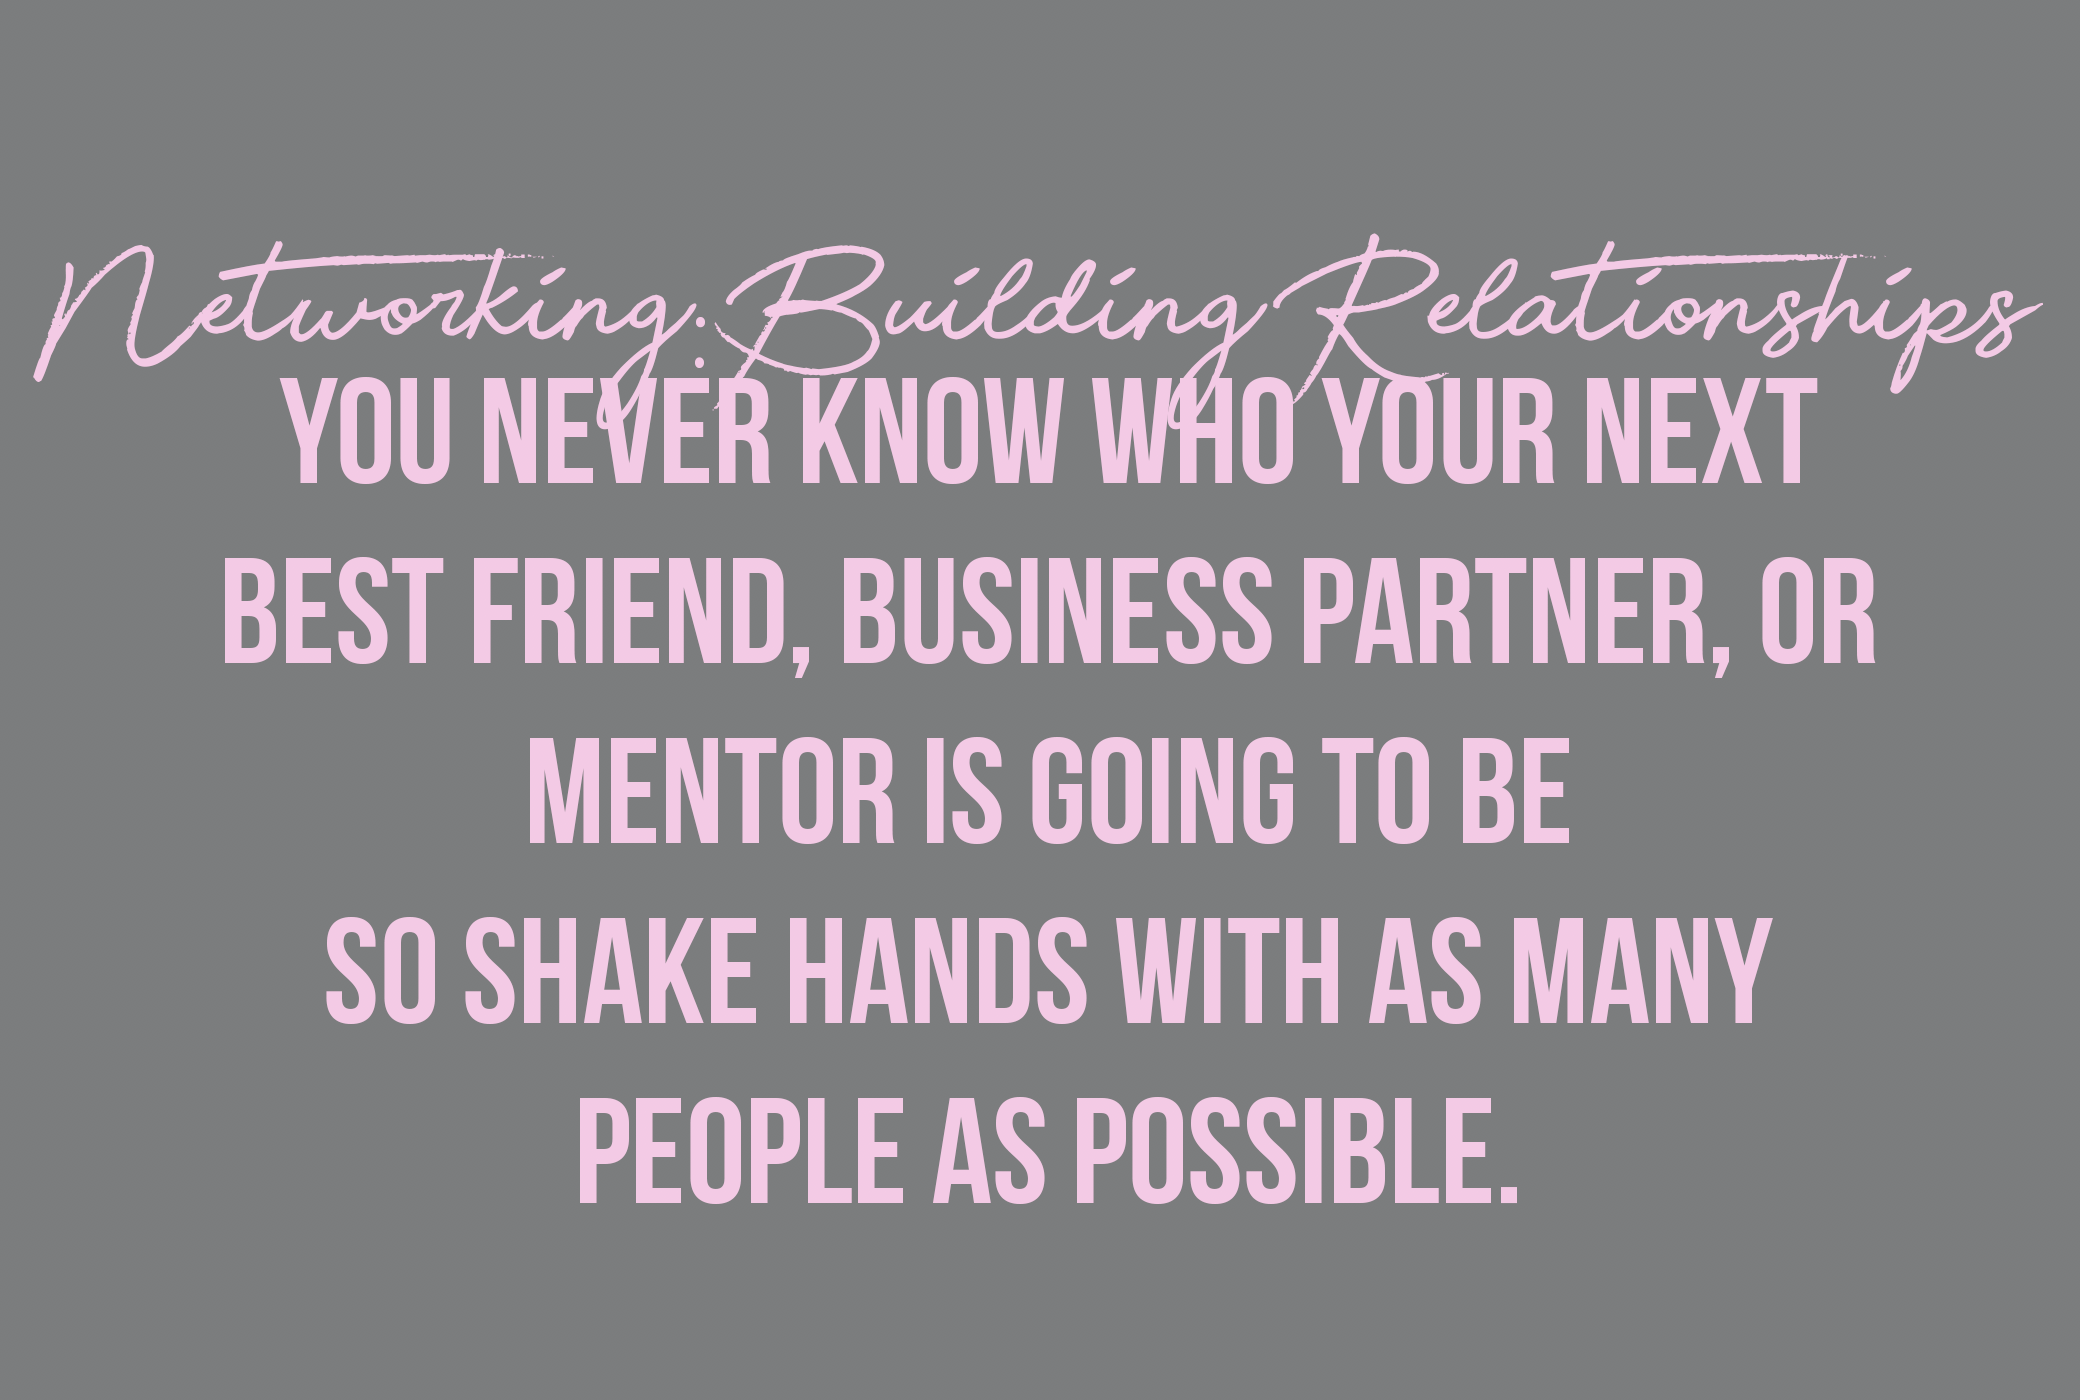 networking:building relationships for business